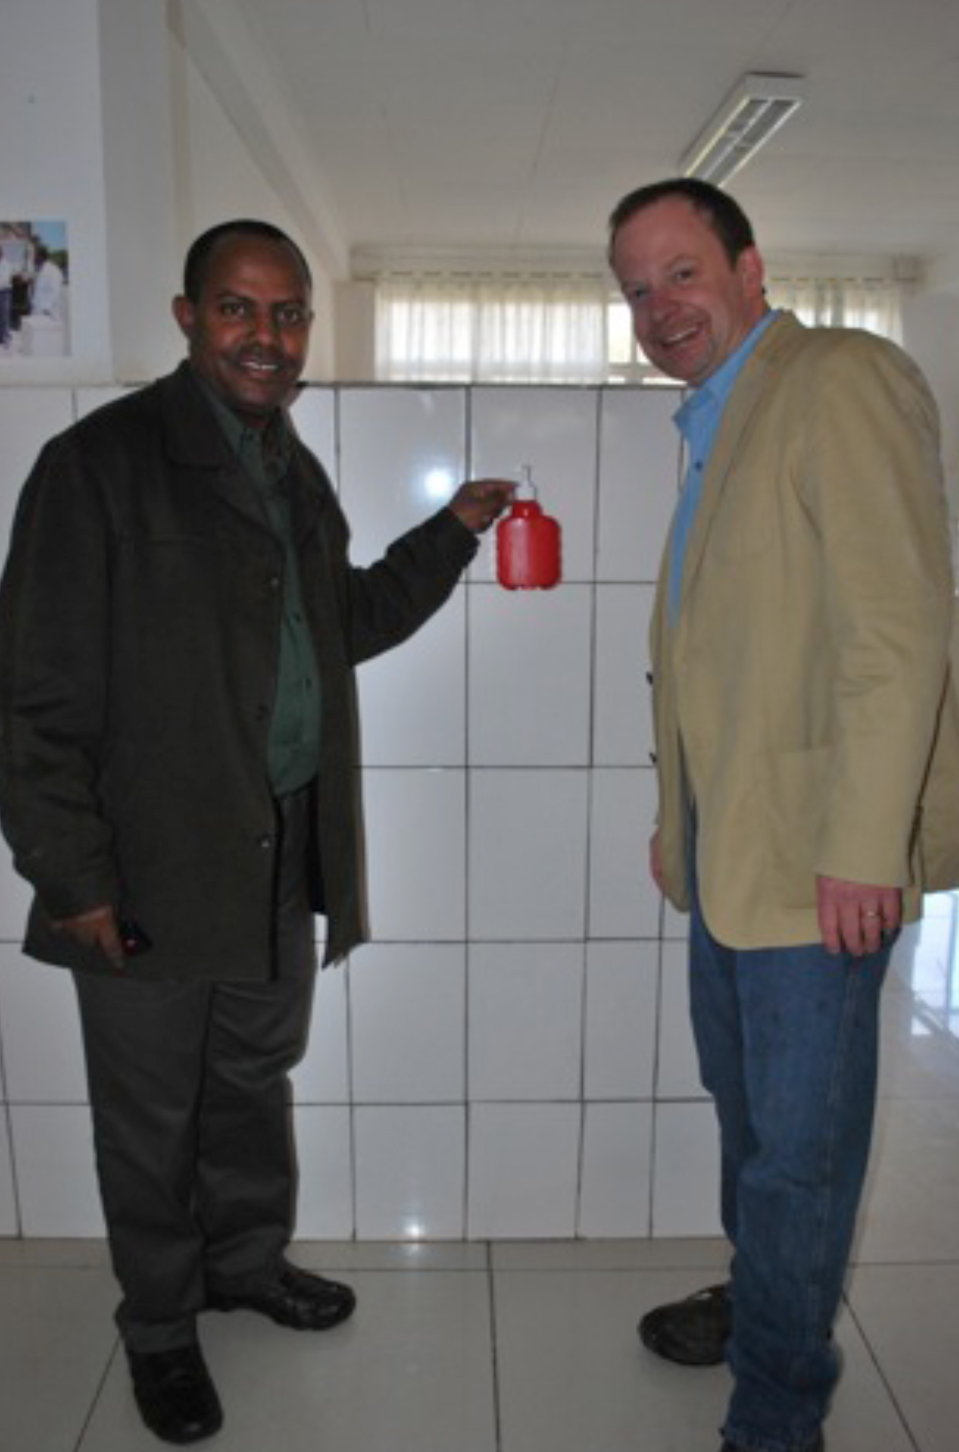 """Dr. Sisay Yifru, Dean of University of Gondar College of Medicine and Health Sciences demonstrates to me the use of a hand sanitizer dispenser on an inpatient unit at the University of Gondar Hospital.   These dispensers are manufactured at a local plastics factory.  The dispenser location and design demonstrate local adaptation of international """"best practices"""" for hand hygiene in health care facilities, including placing hand sanitizer at the """"point of care.""""  This technology was developed and deployed in cooperation with the Patient Safety Initiative, World Health Organization, but has been sustained by administrative support and leadership of the University of Gondar."""